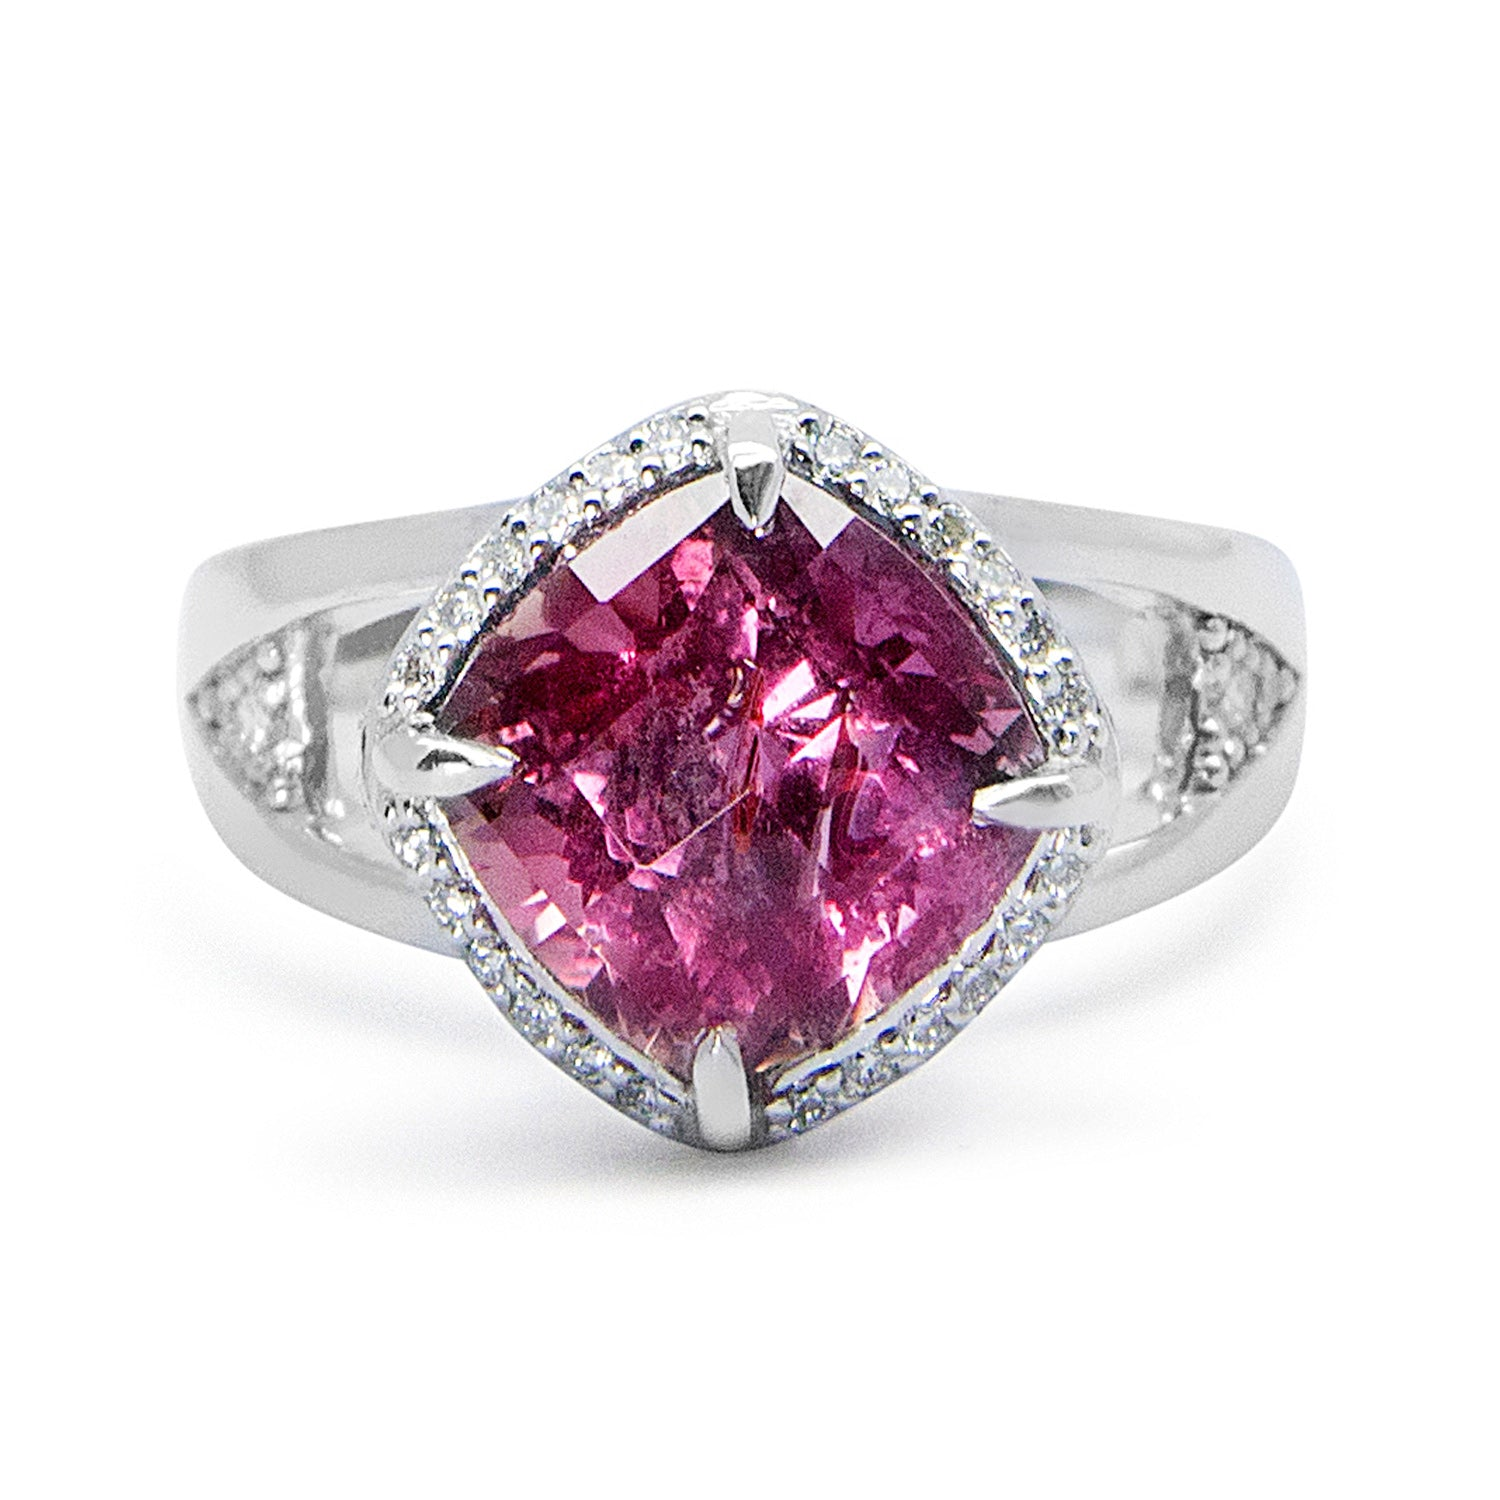 Estelle Pink Sapphire Cocktail Ring